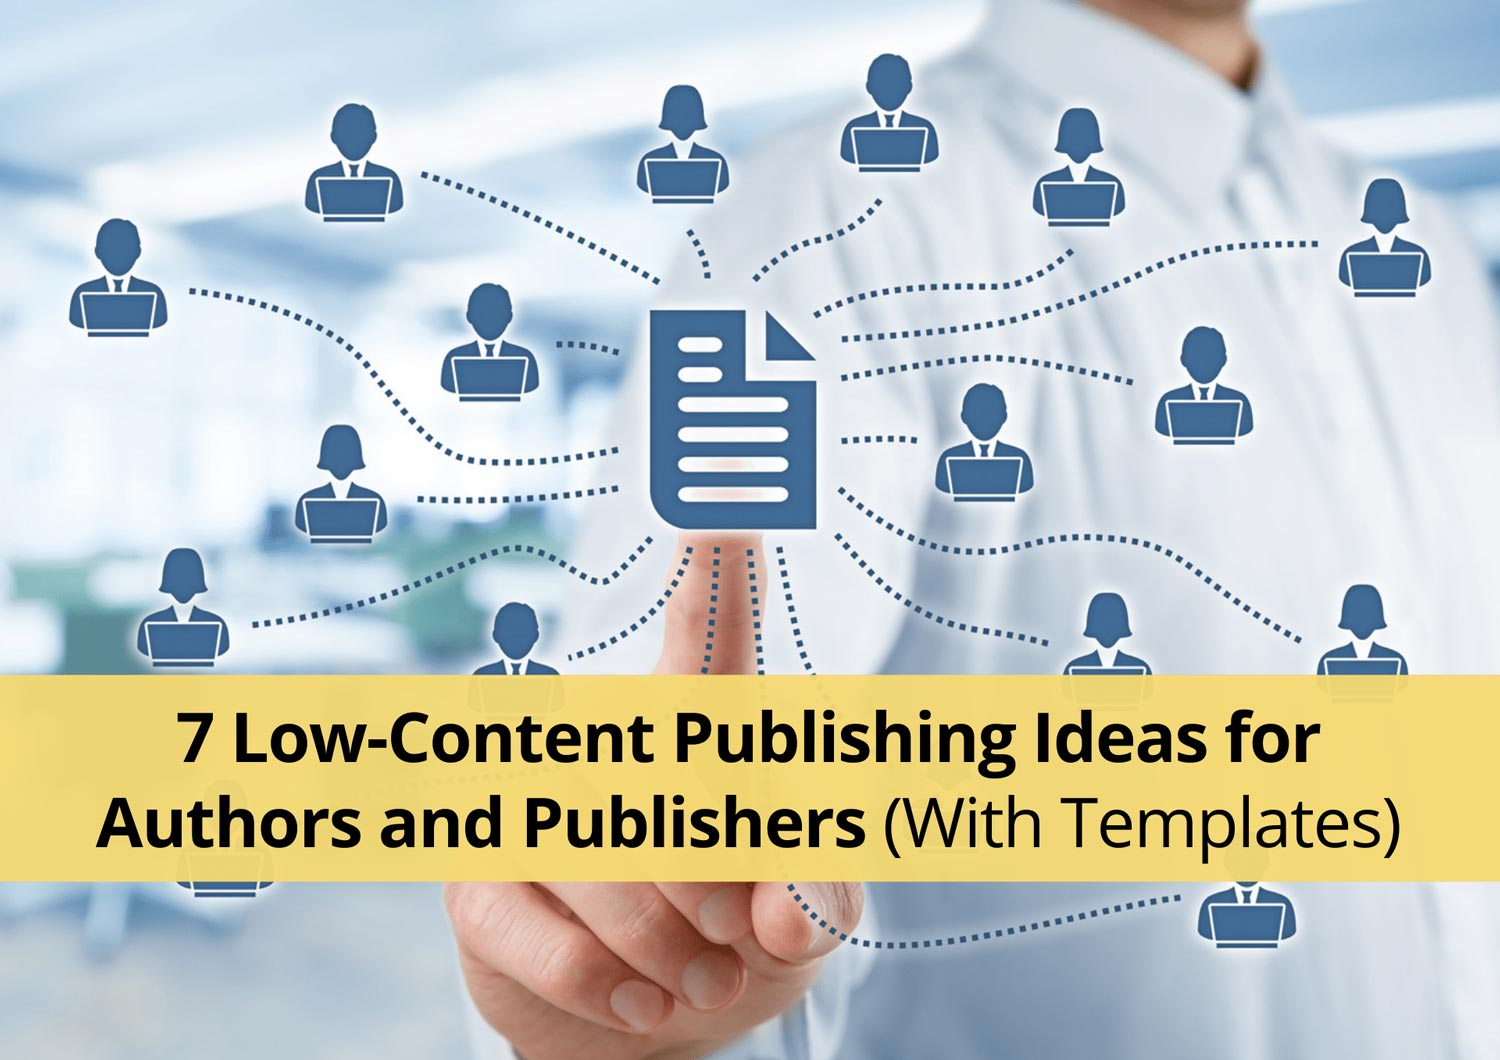 7 Low-Content Publishing Ideas for Authors and Publishers (With Templates)